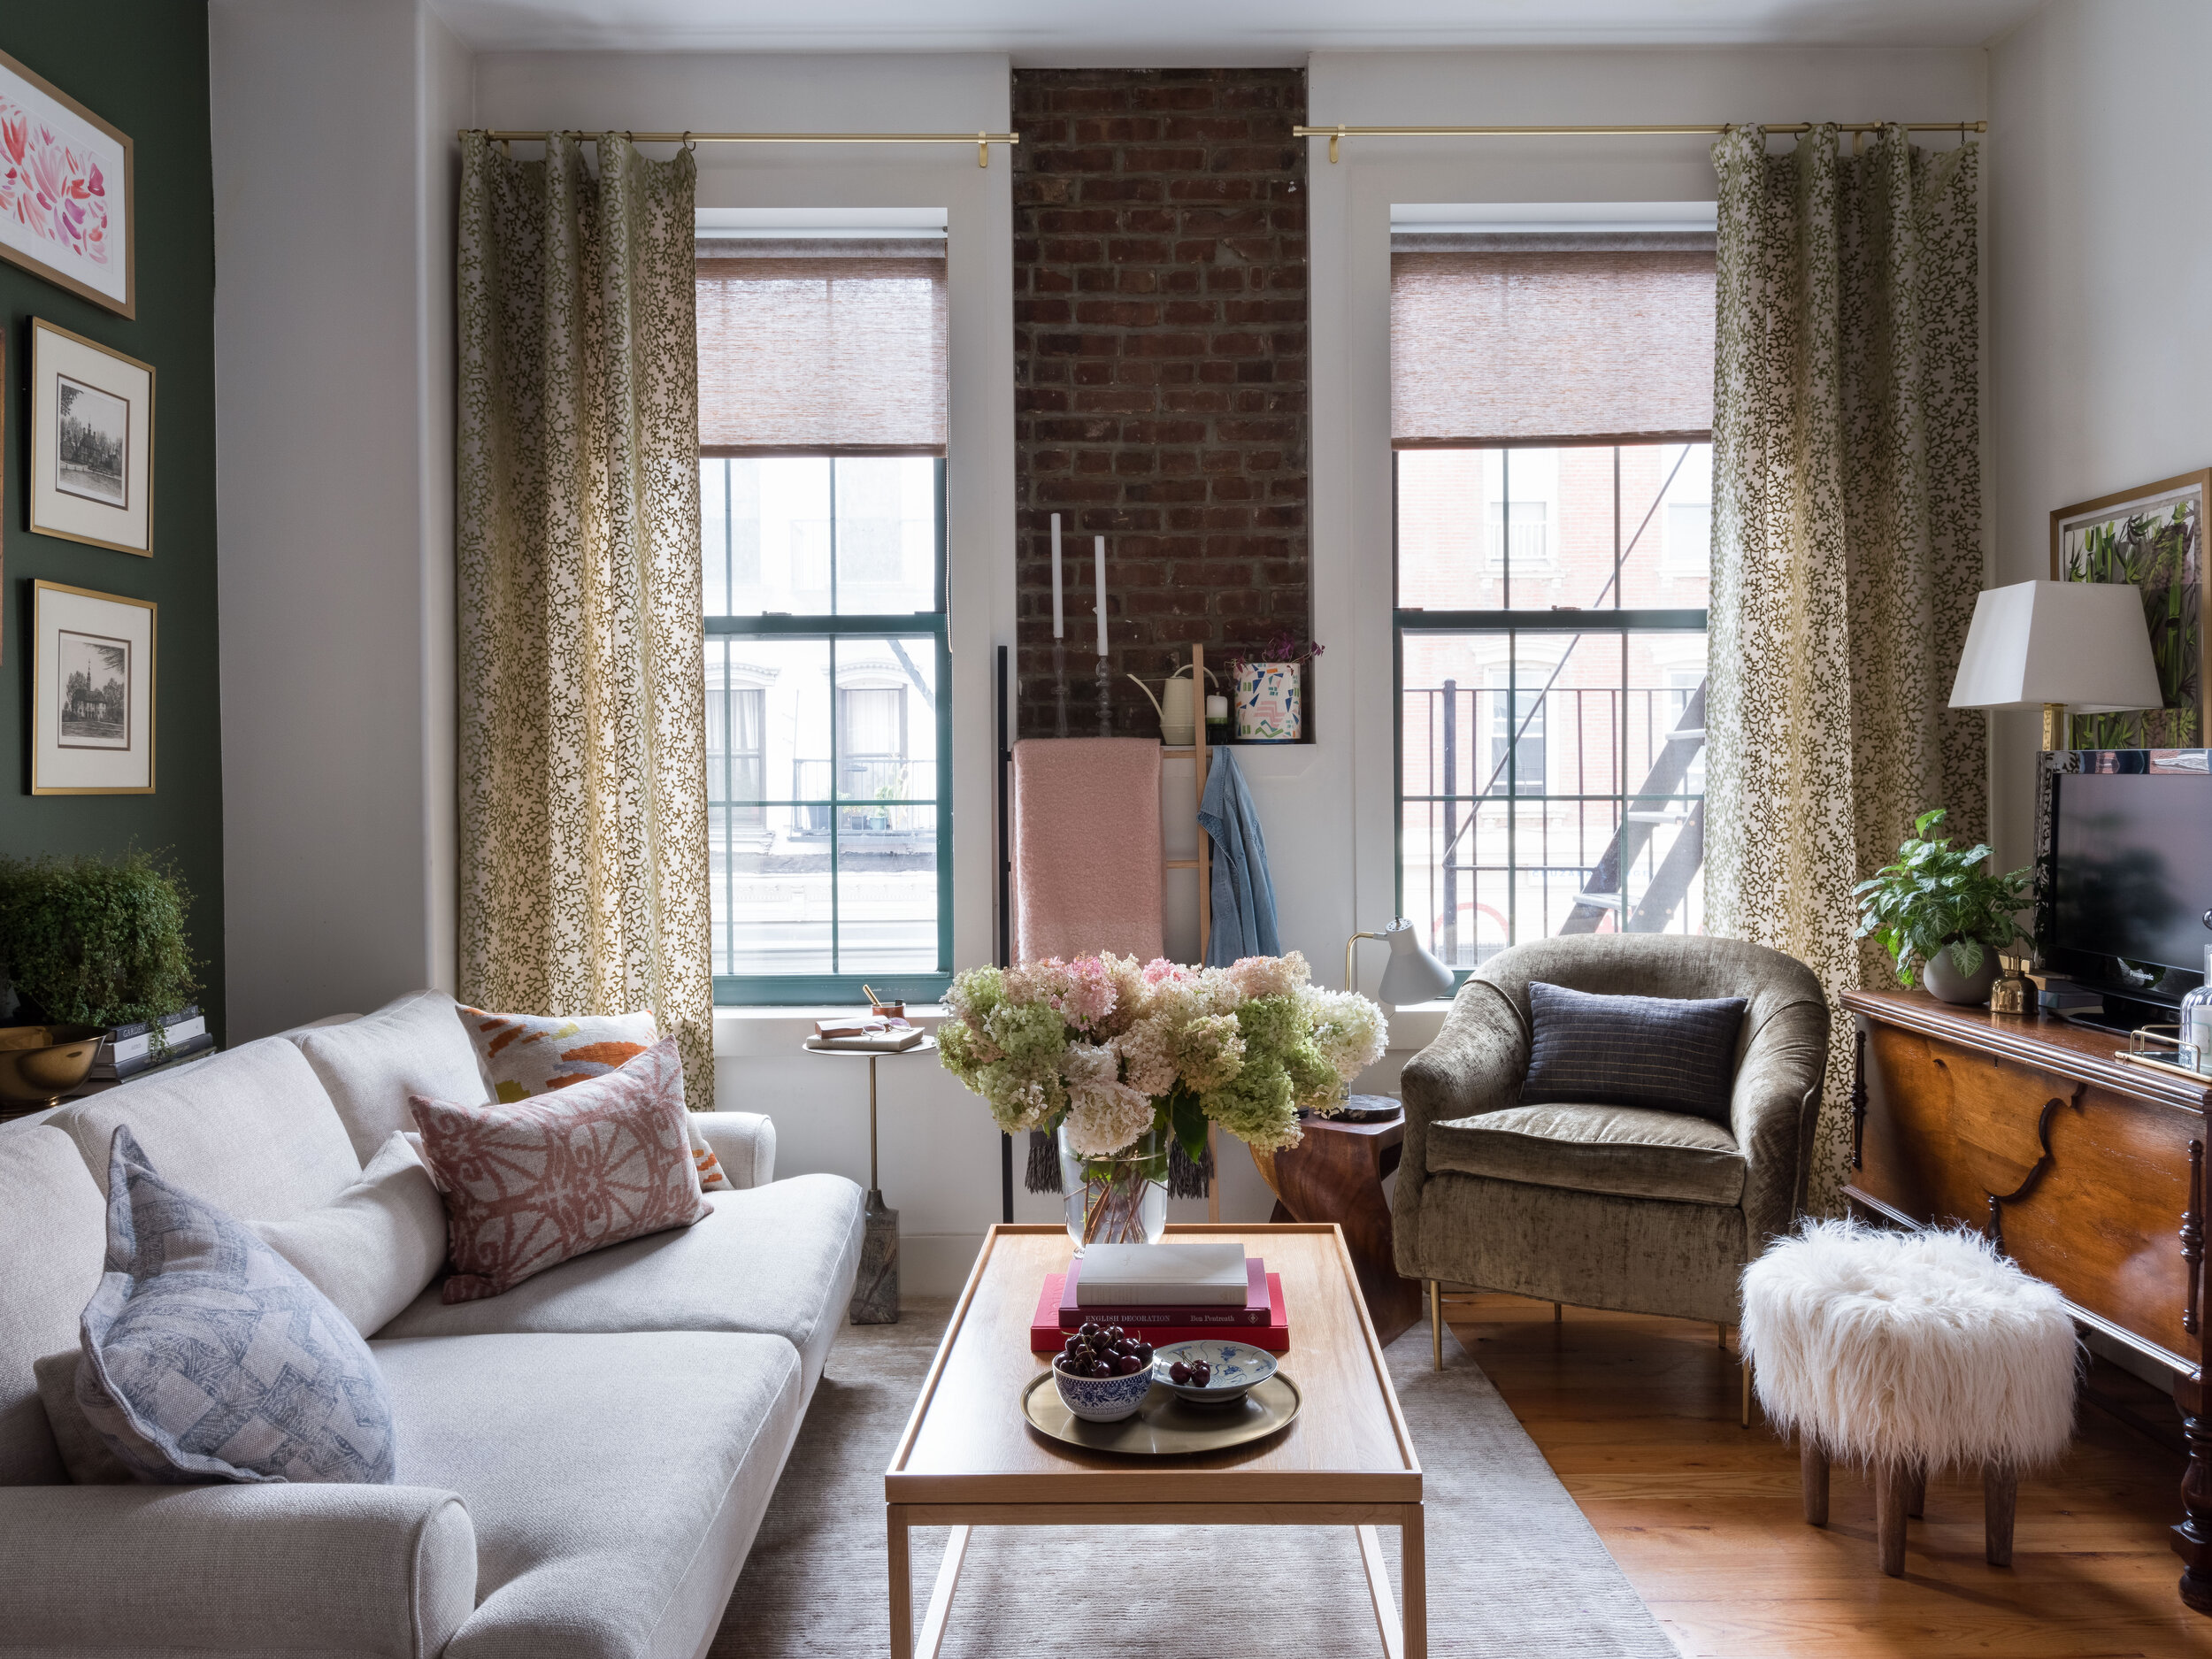 Brooklyn apartment - AFTER